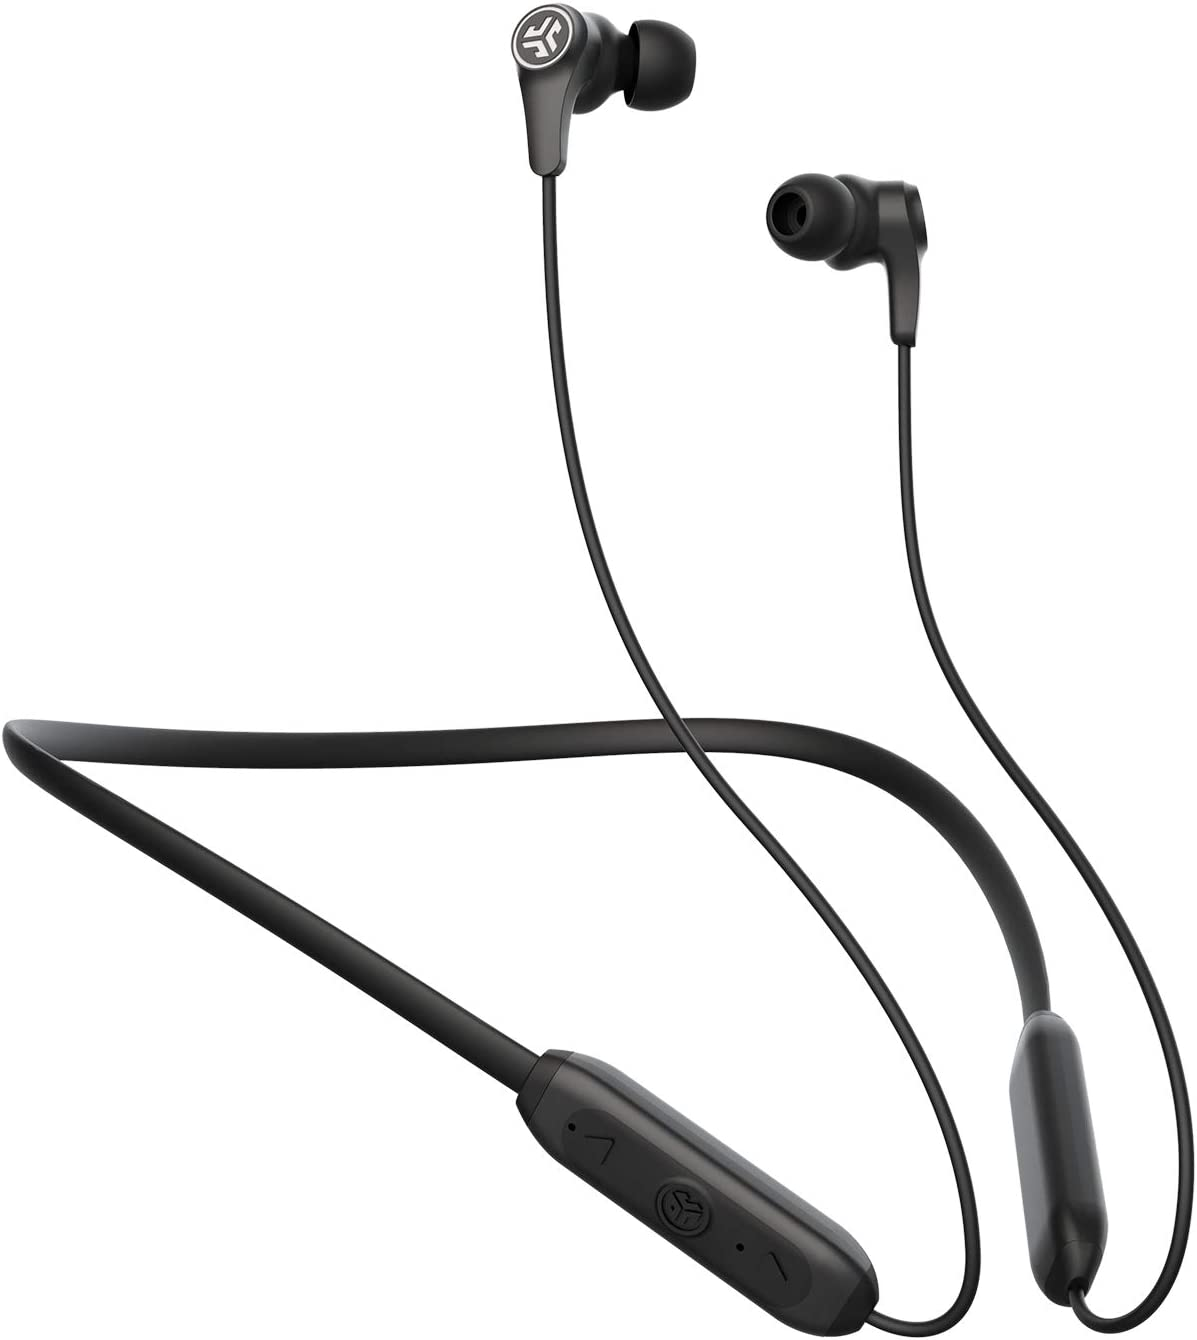 JBuds Band Wireless Earbud Neckband Headset - Black - IP66 Sweatproof - Bluetooth 5 Connection - Built-in Microphone for Phone Calls - 3 EQ Sound Settings: JLab Signature, Balanced, Bass Boost